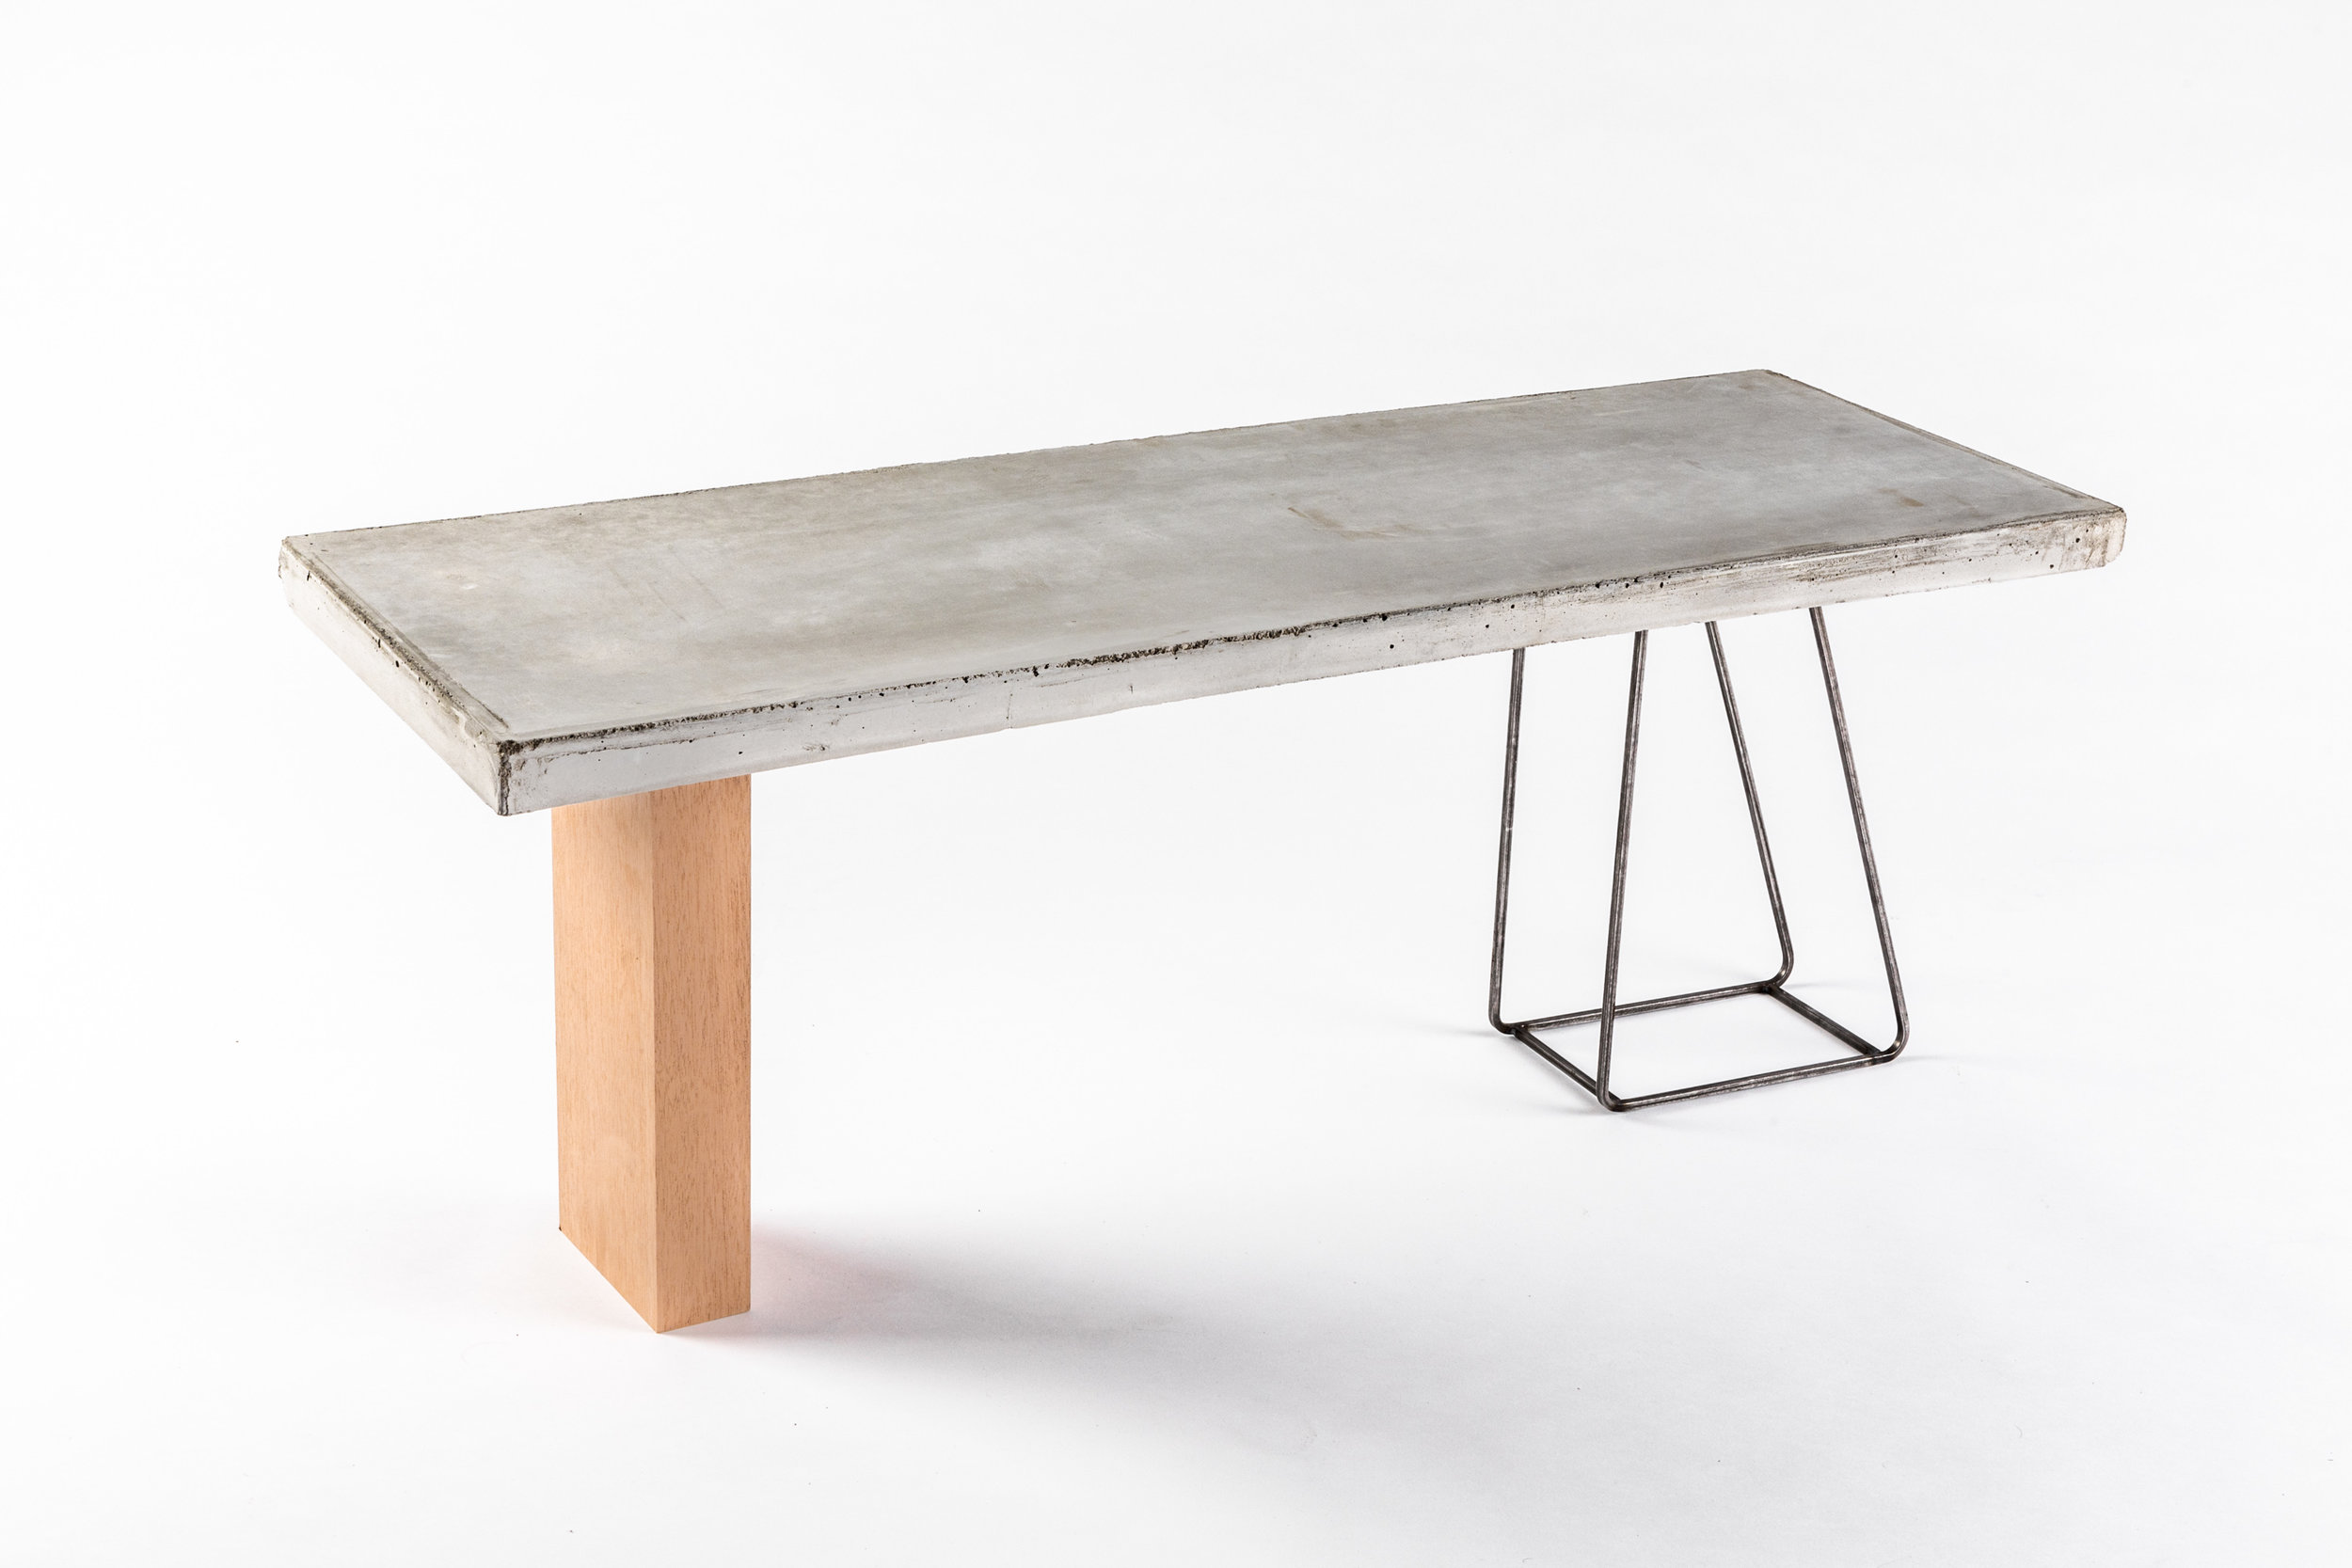 Collectible concrete mahogany and steel designer bench